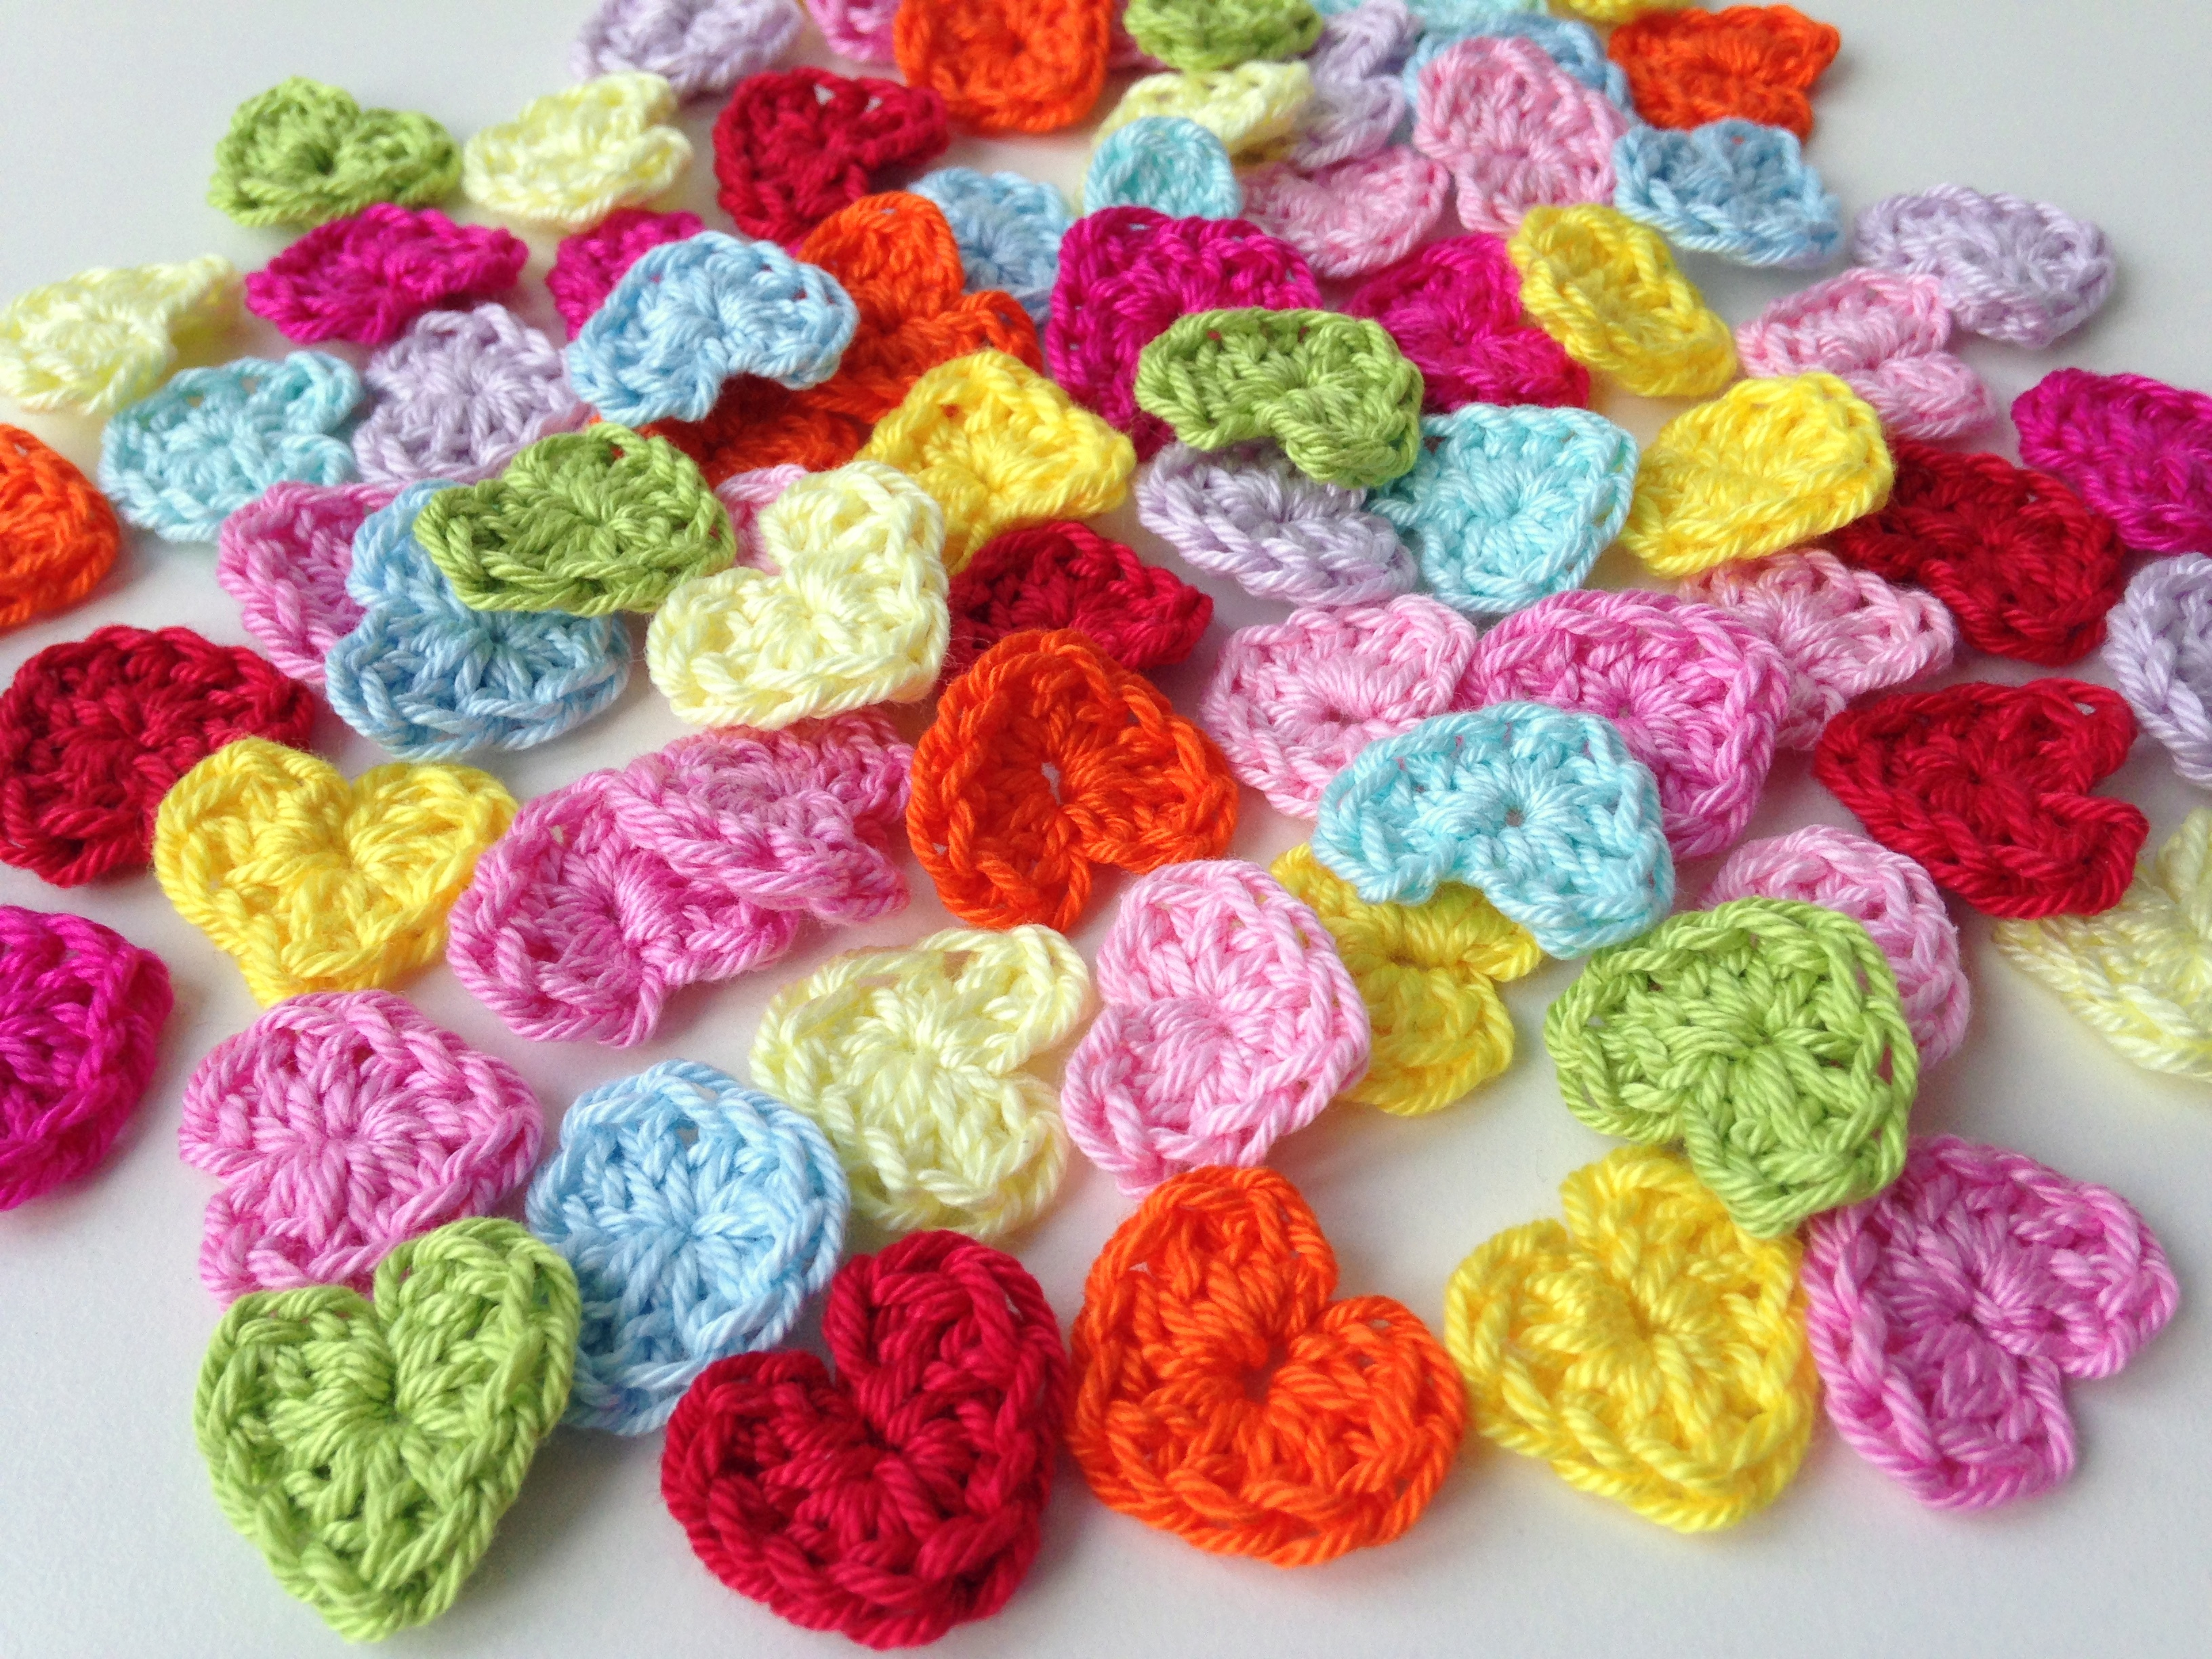 Crocheted Jar Lid Covers maRRose ? Colorful Crochet & Crafts